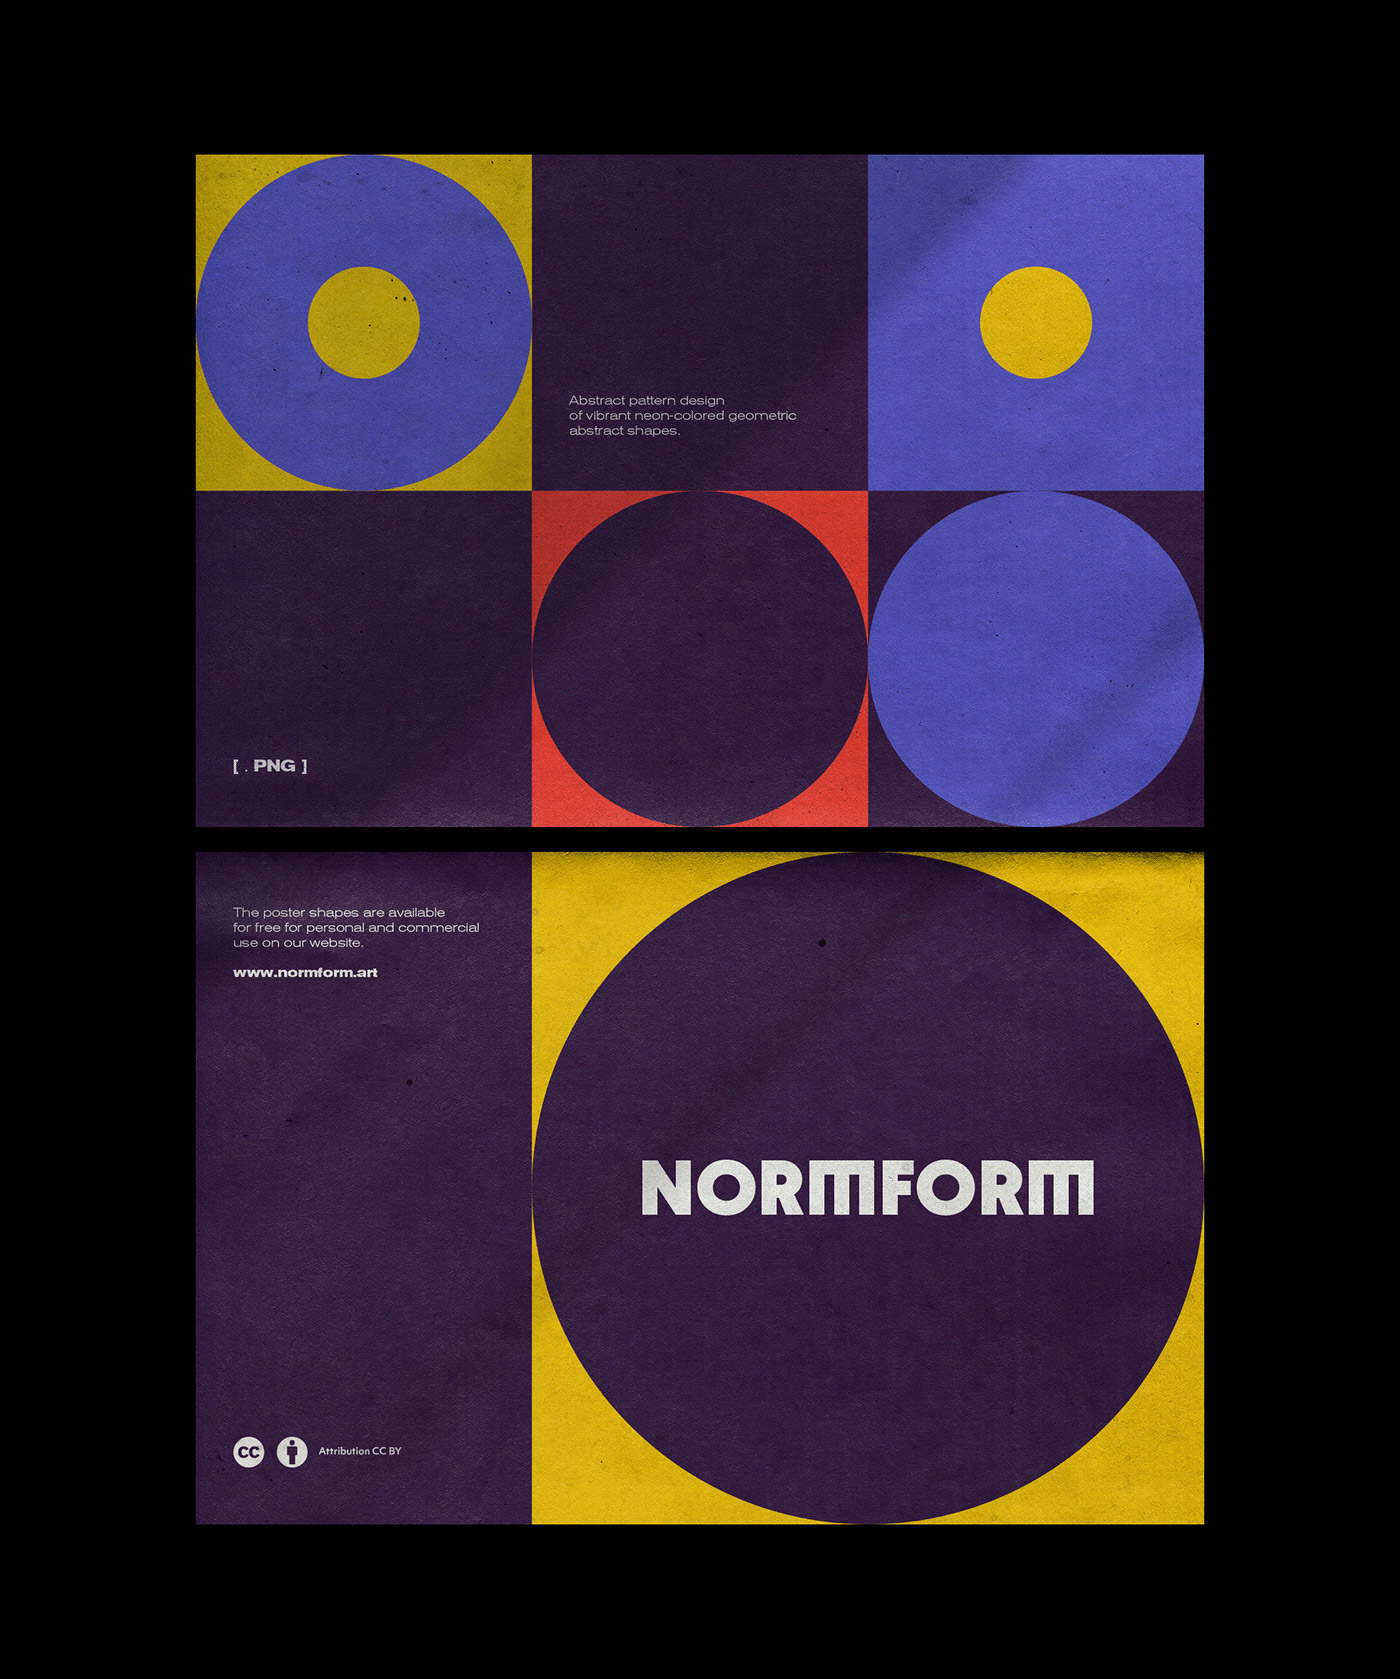 Free generative pattern design by Normform.